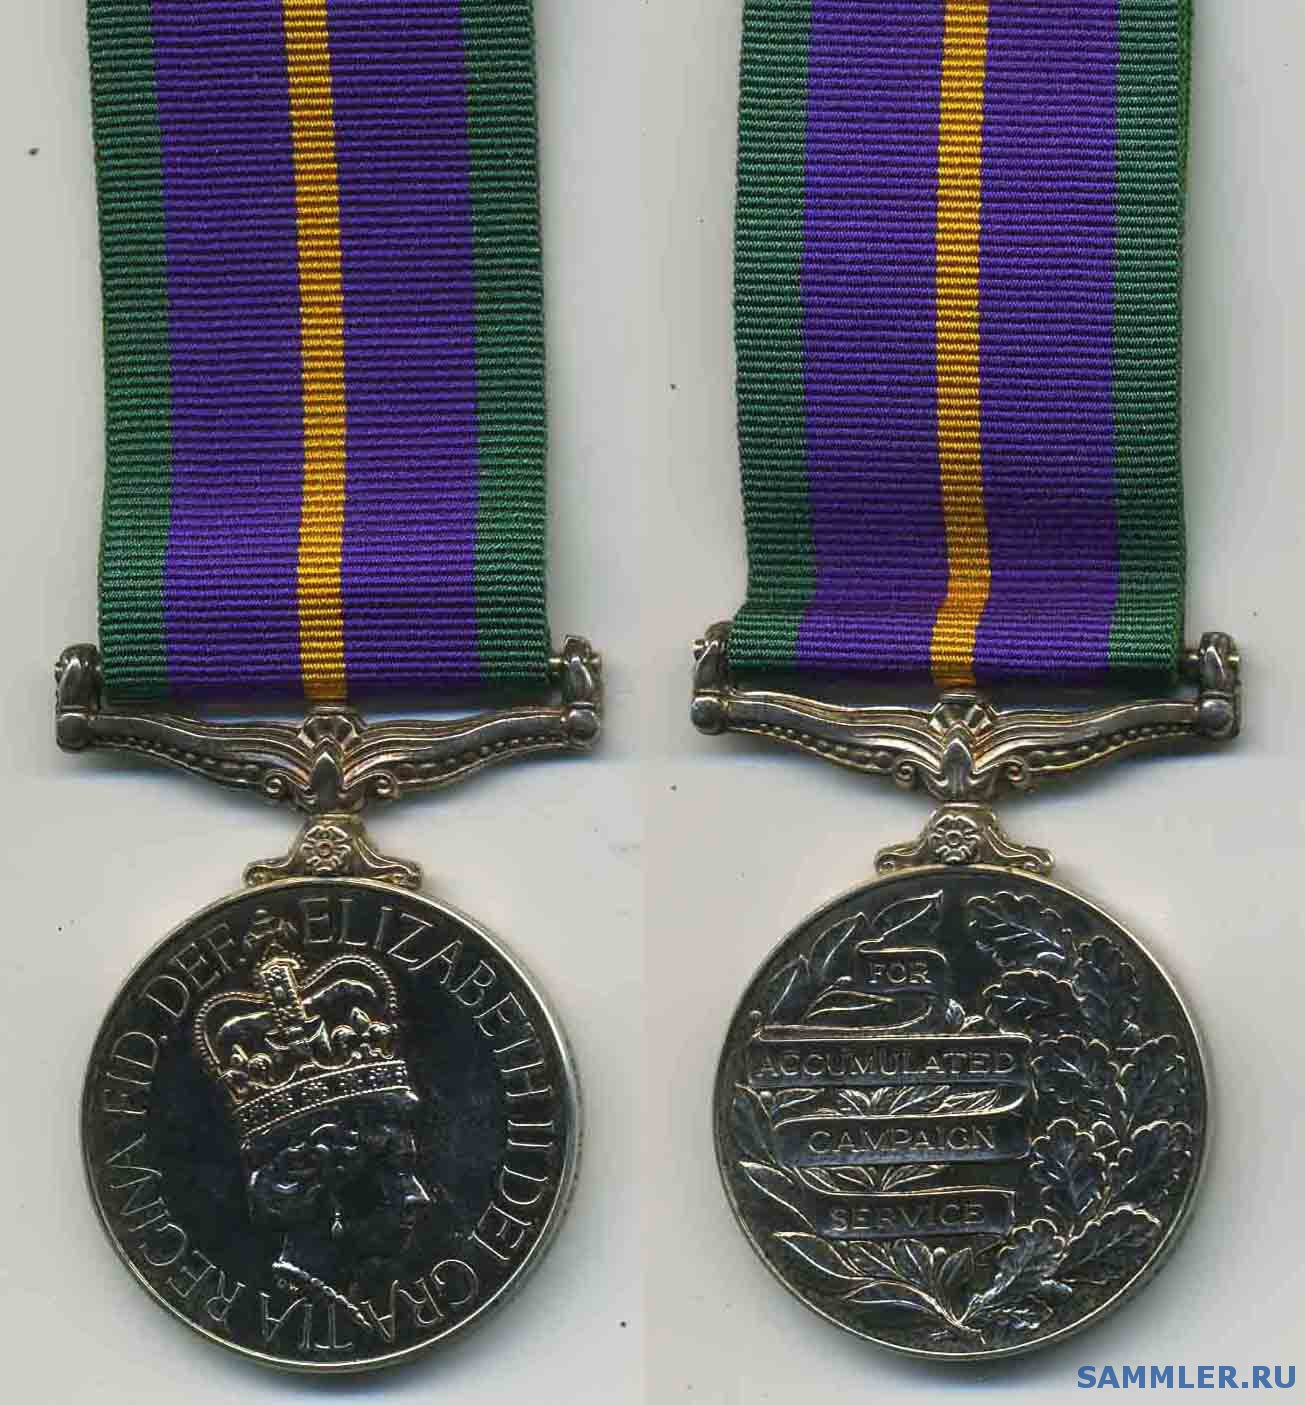 Accumulated_Campaign_Service_Medal.jpg